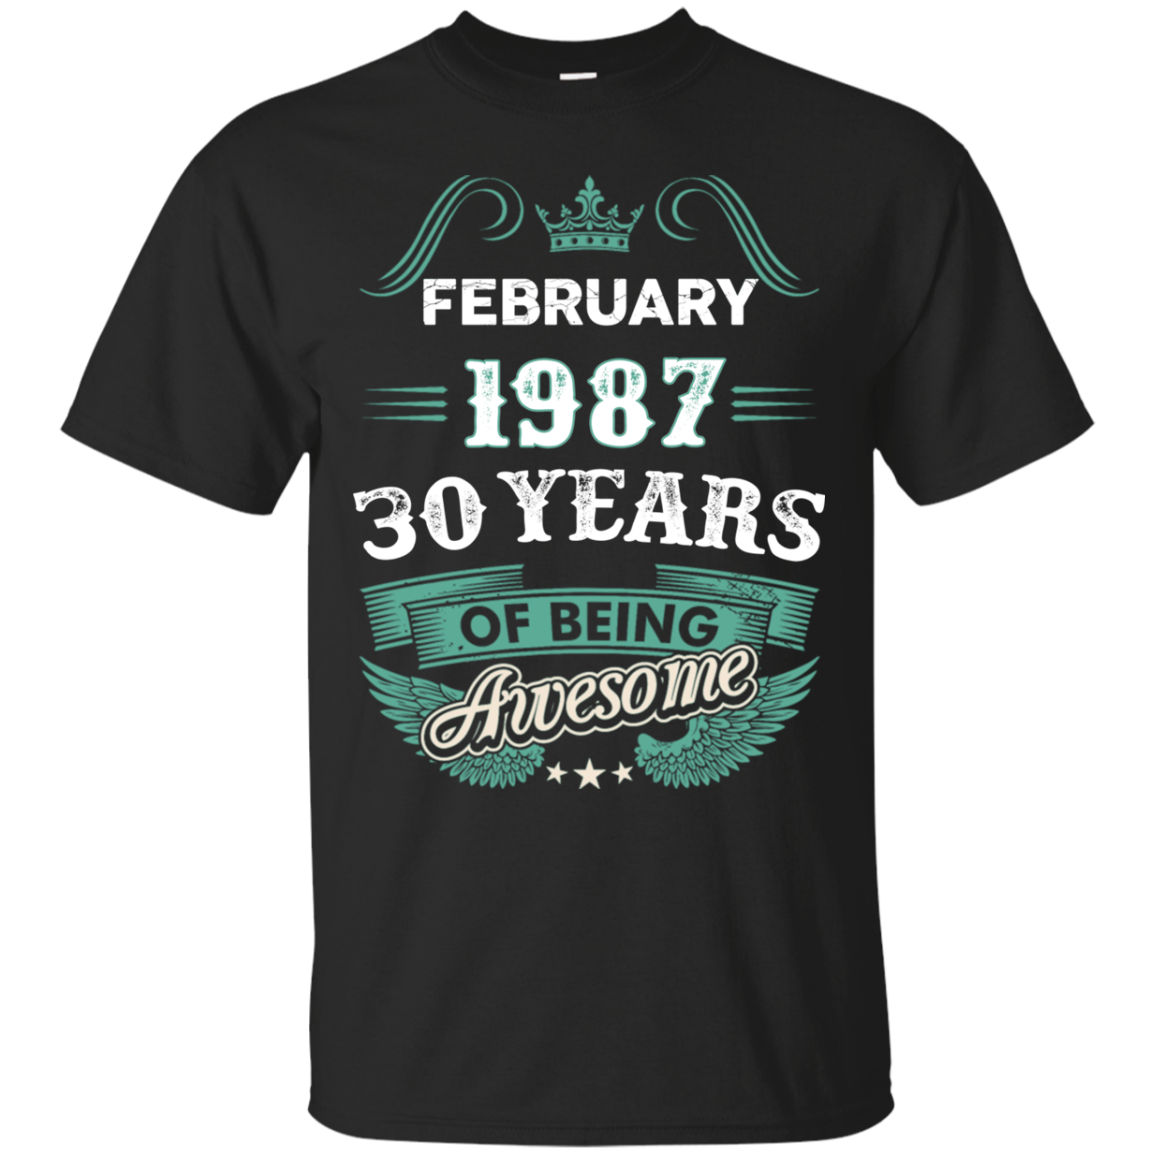 February 1987 30 Years of being Awesome t shirt Men